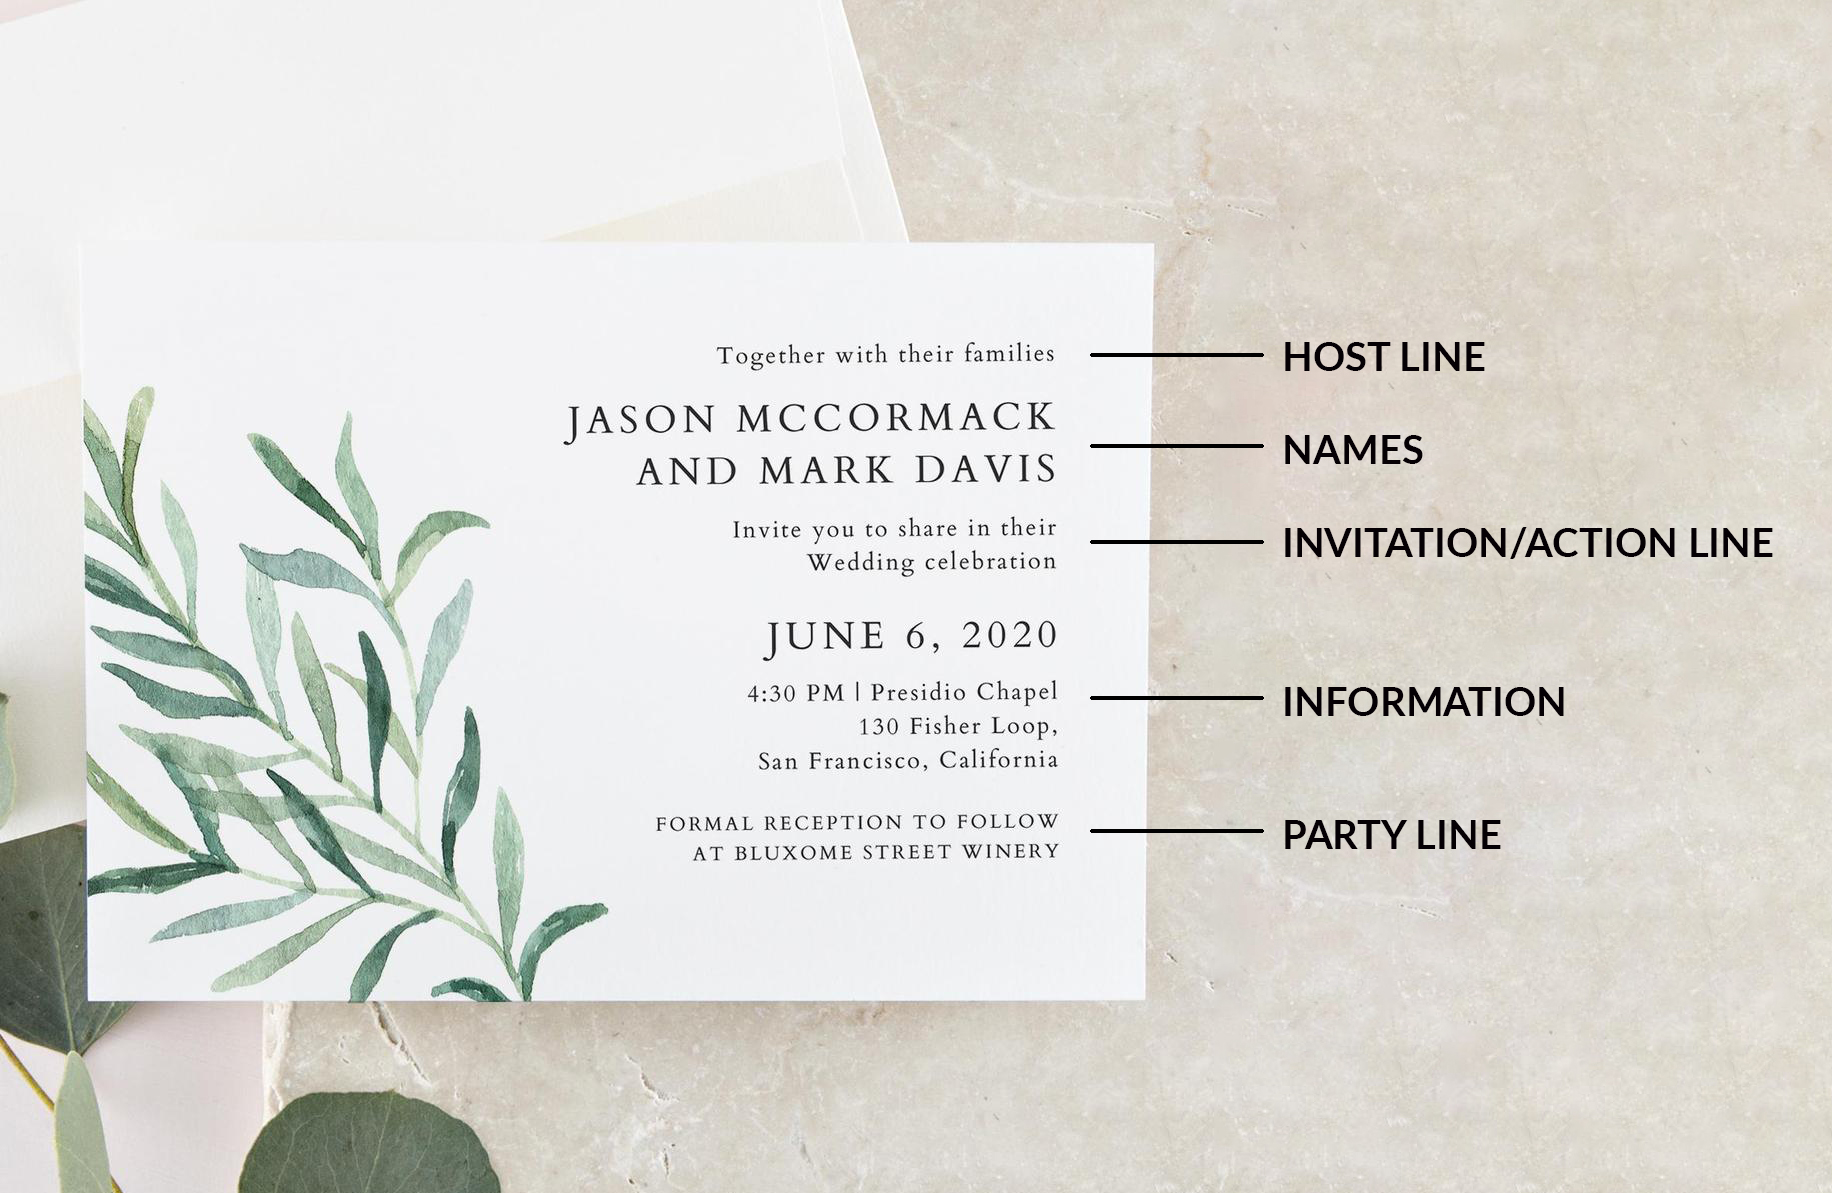 Wording For Invitations Wedding: Wedding Invitation Wording Examples In Every Style